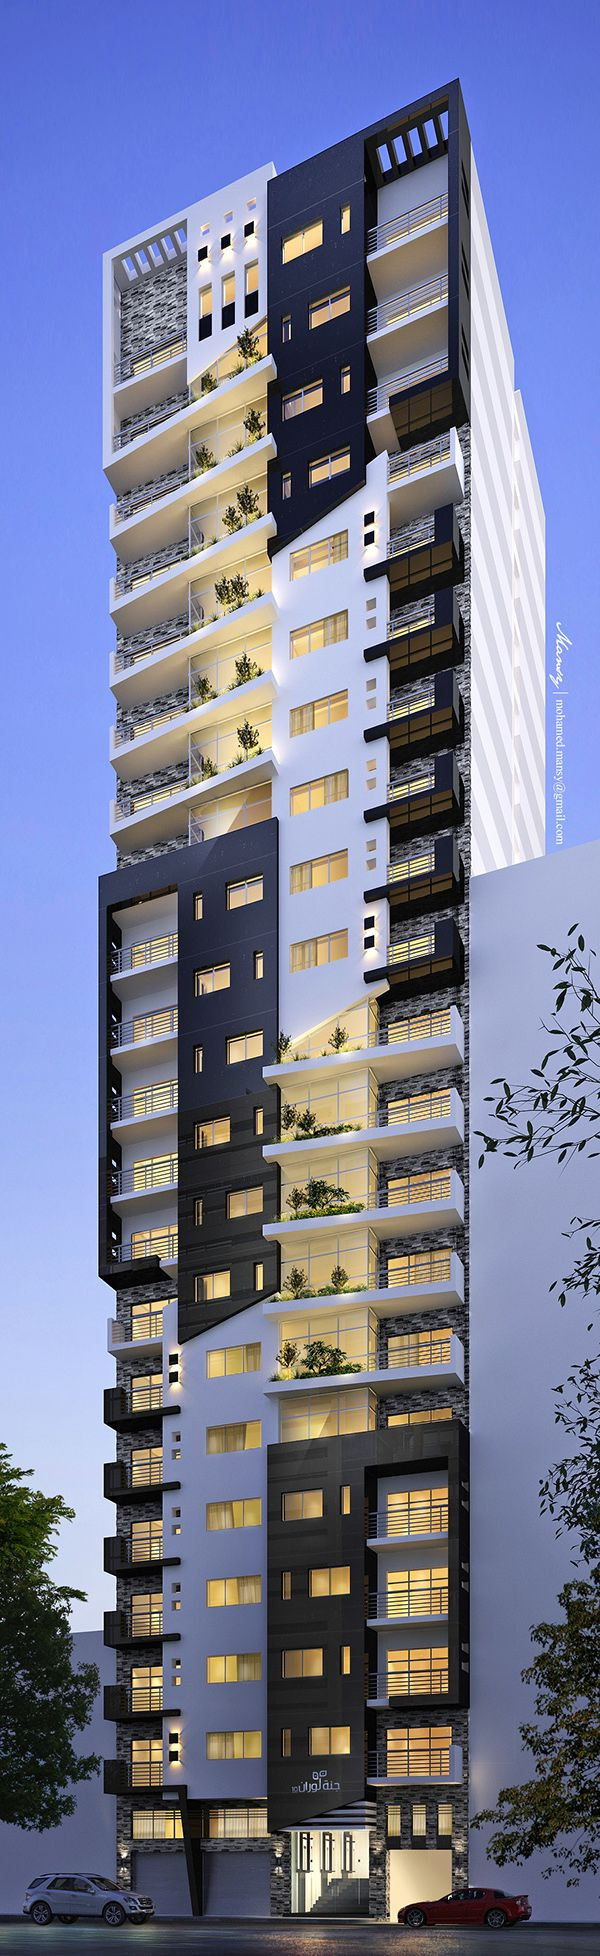 Loran High Rise Residential Apartment Building On Behance Luxury